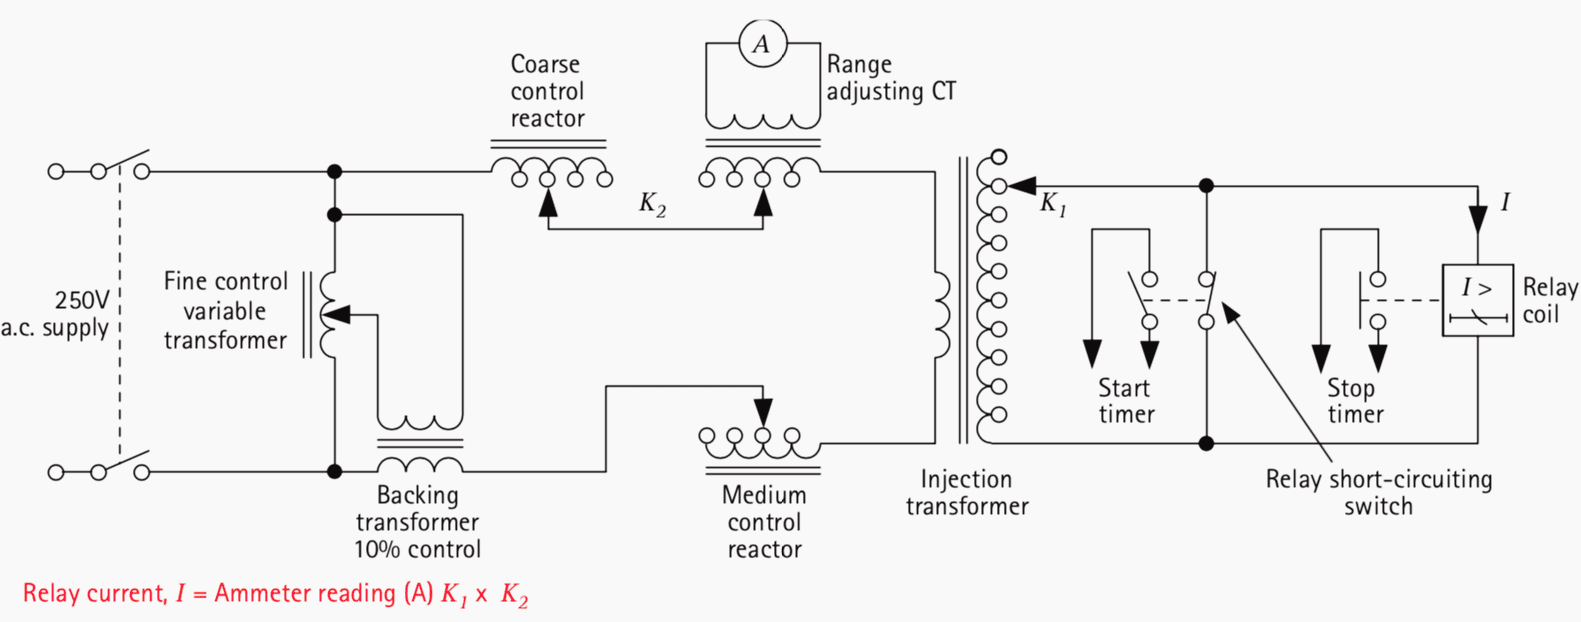 hight resolution of circuit diagram of traditional test set for overcurrent relays